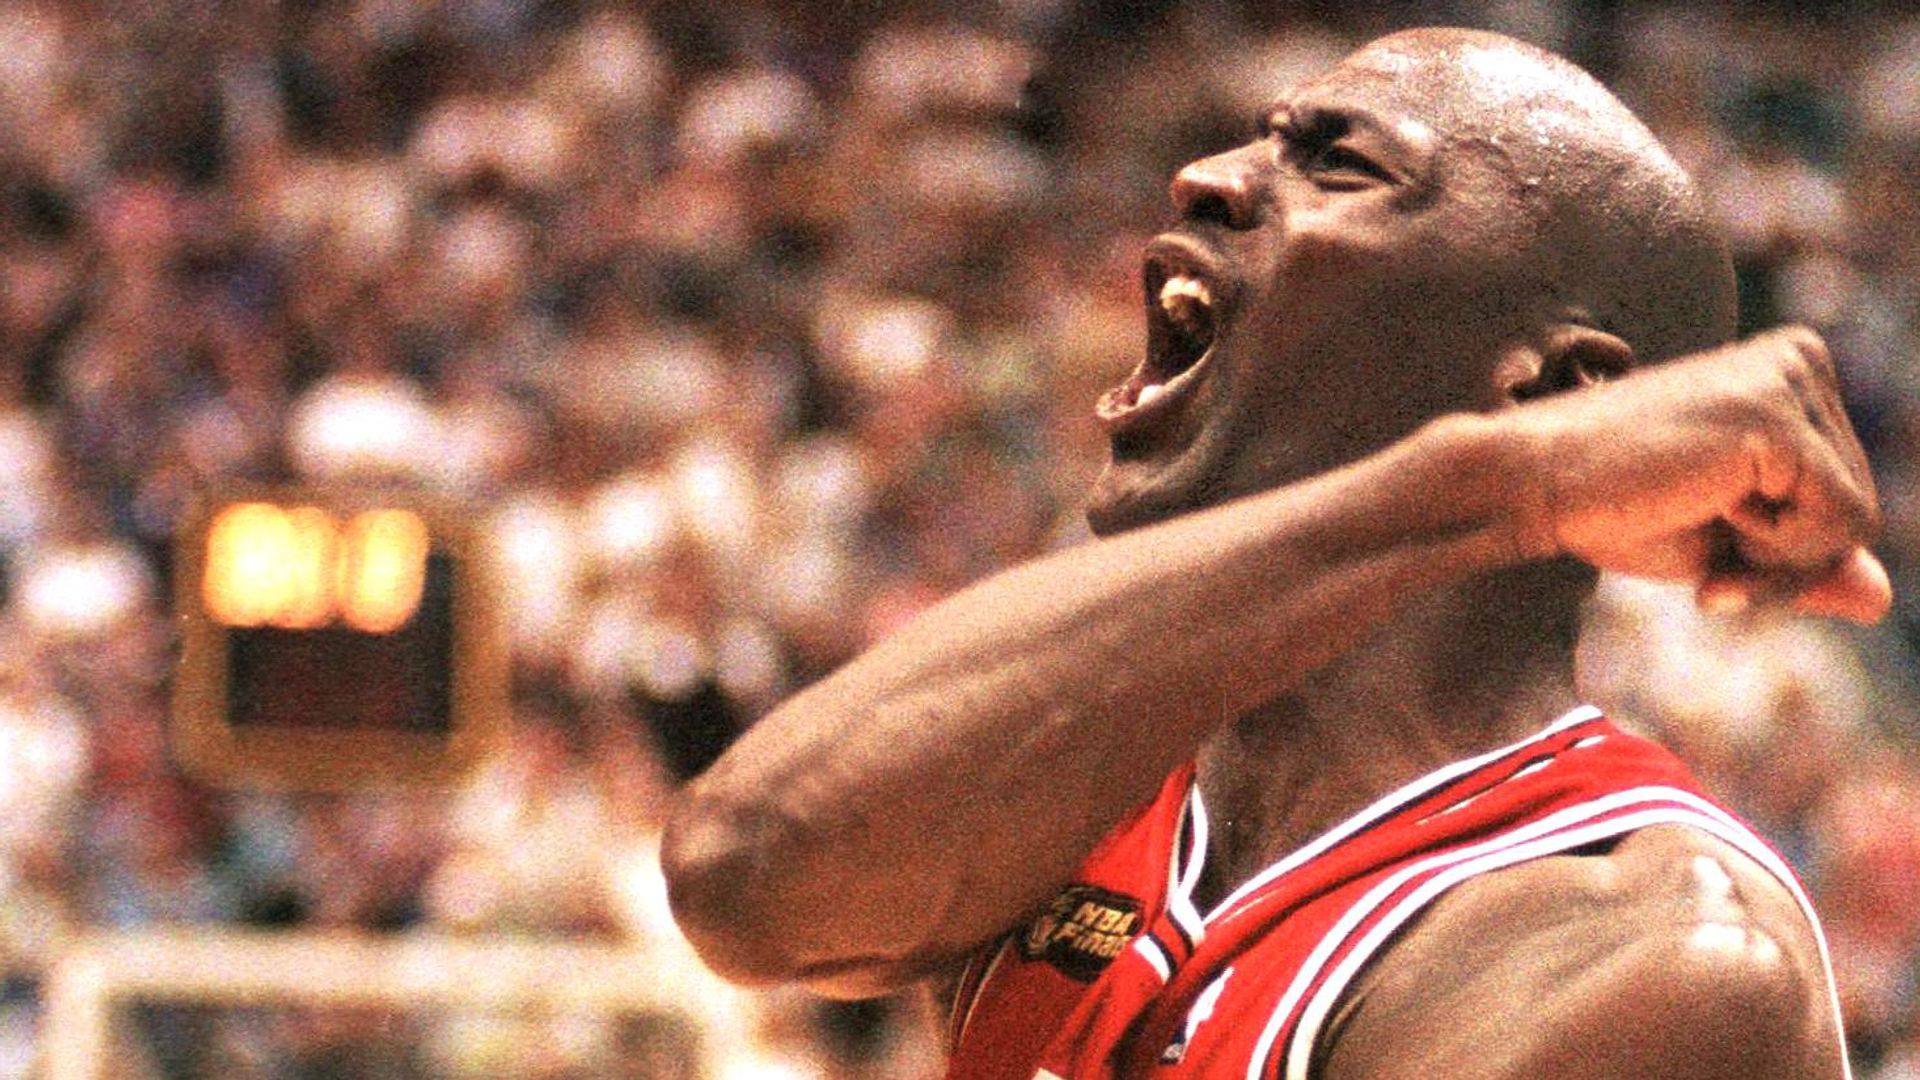 QUIZ: How much do you now know about Jordan?